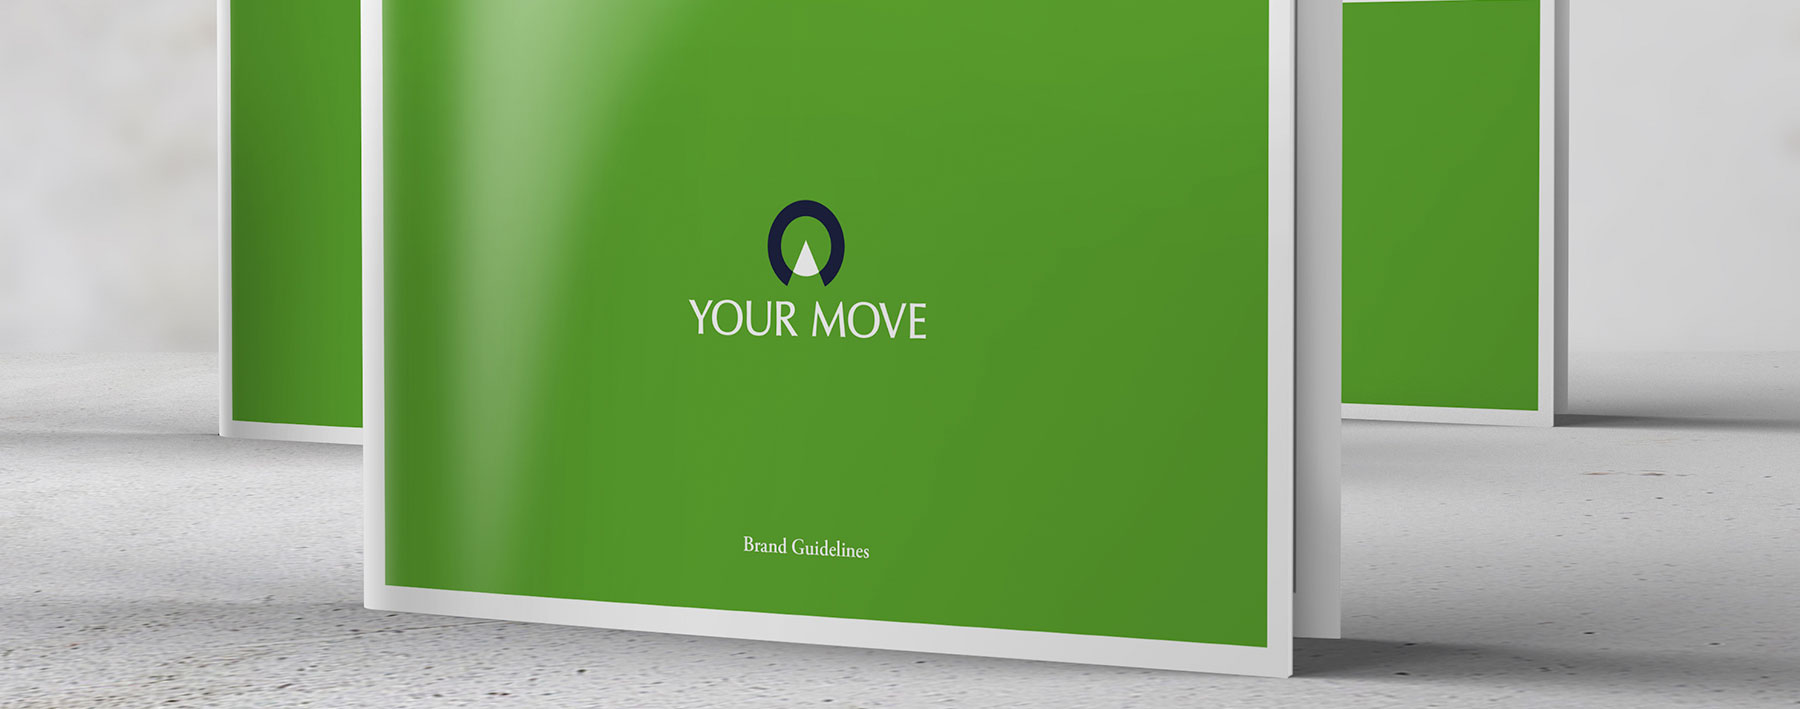 hp-slide-yourmove-guidleines1